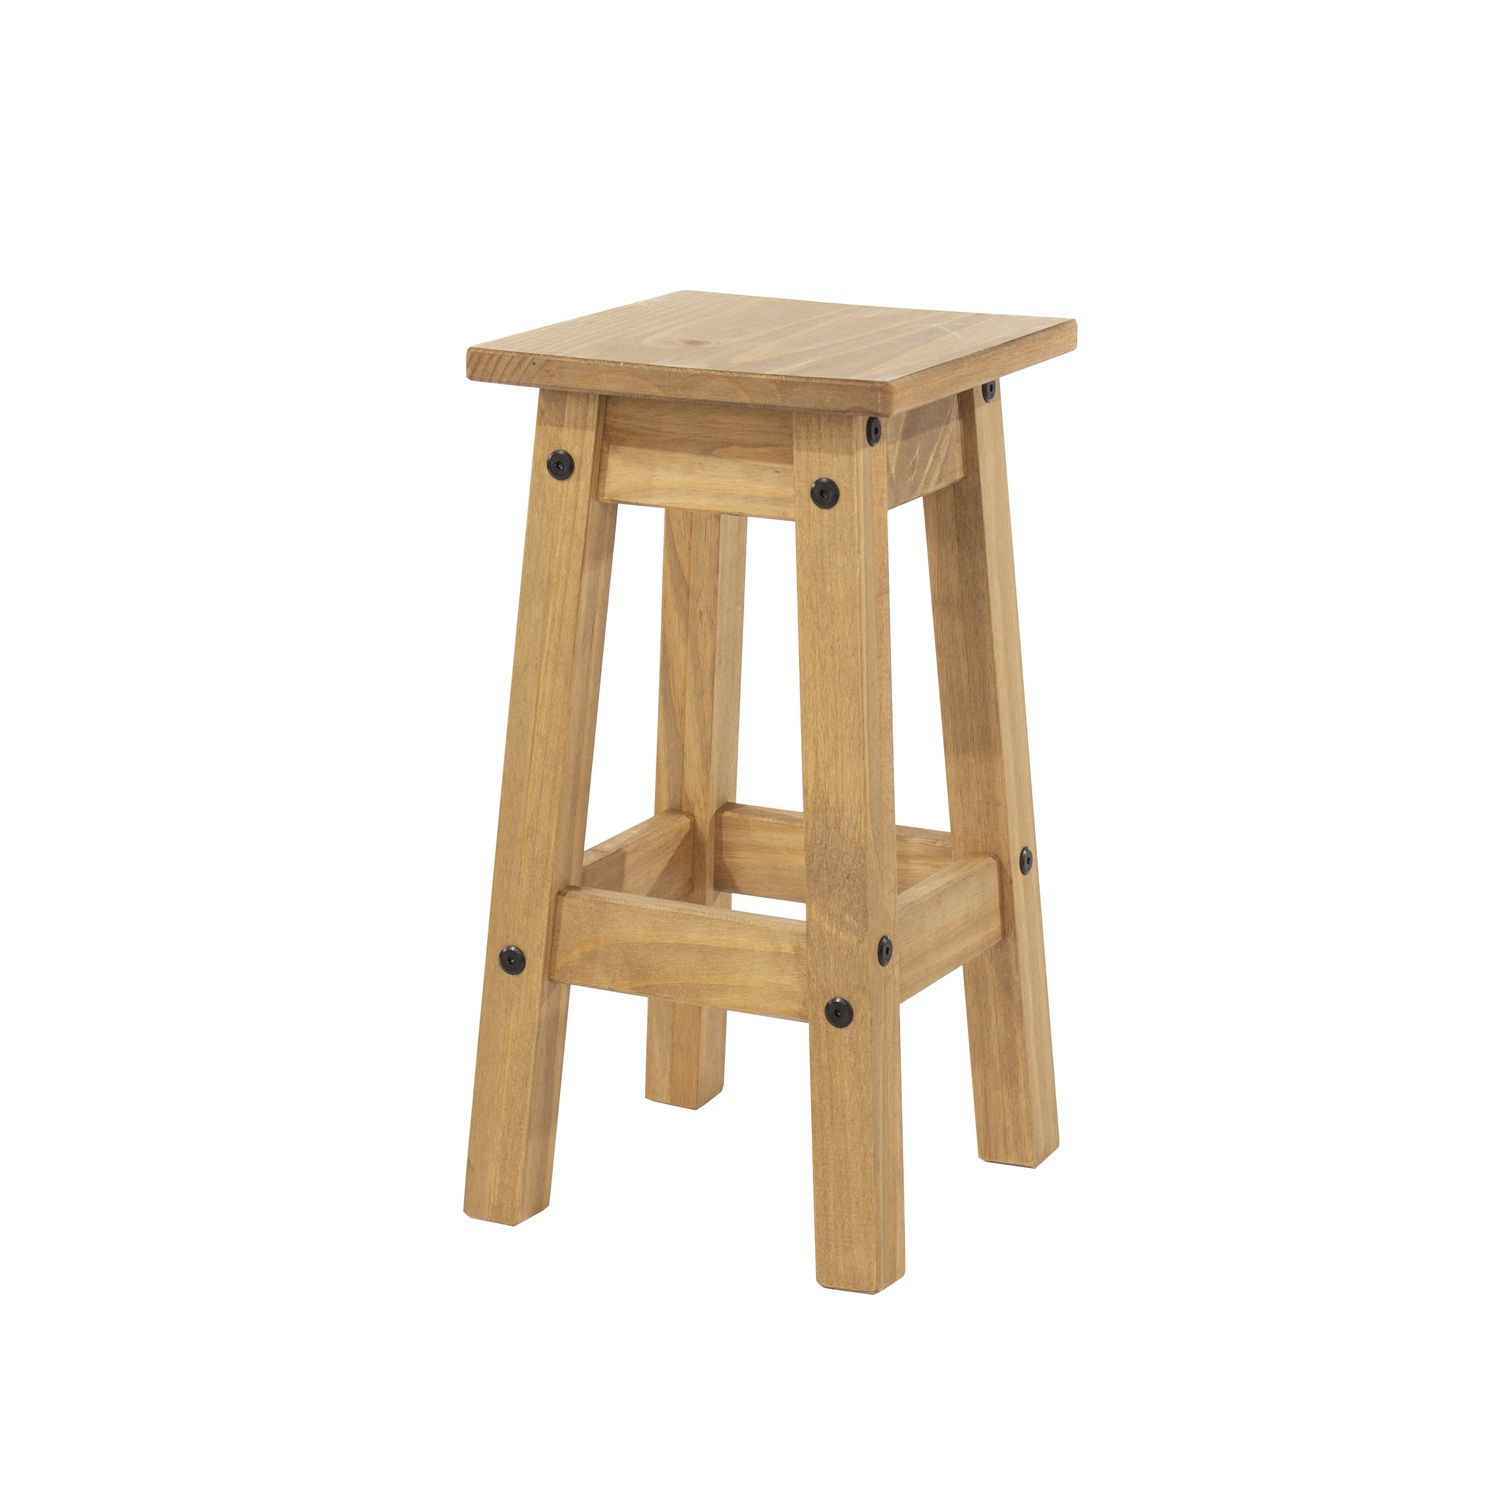 low kitchen stool  (order in pairs)